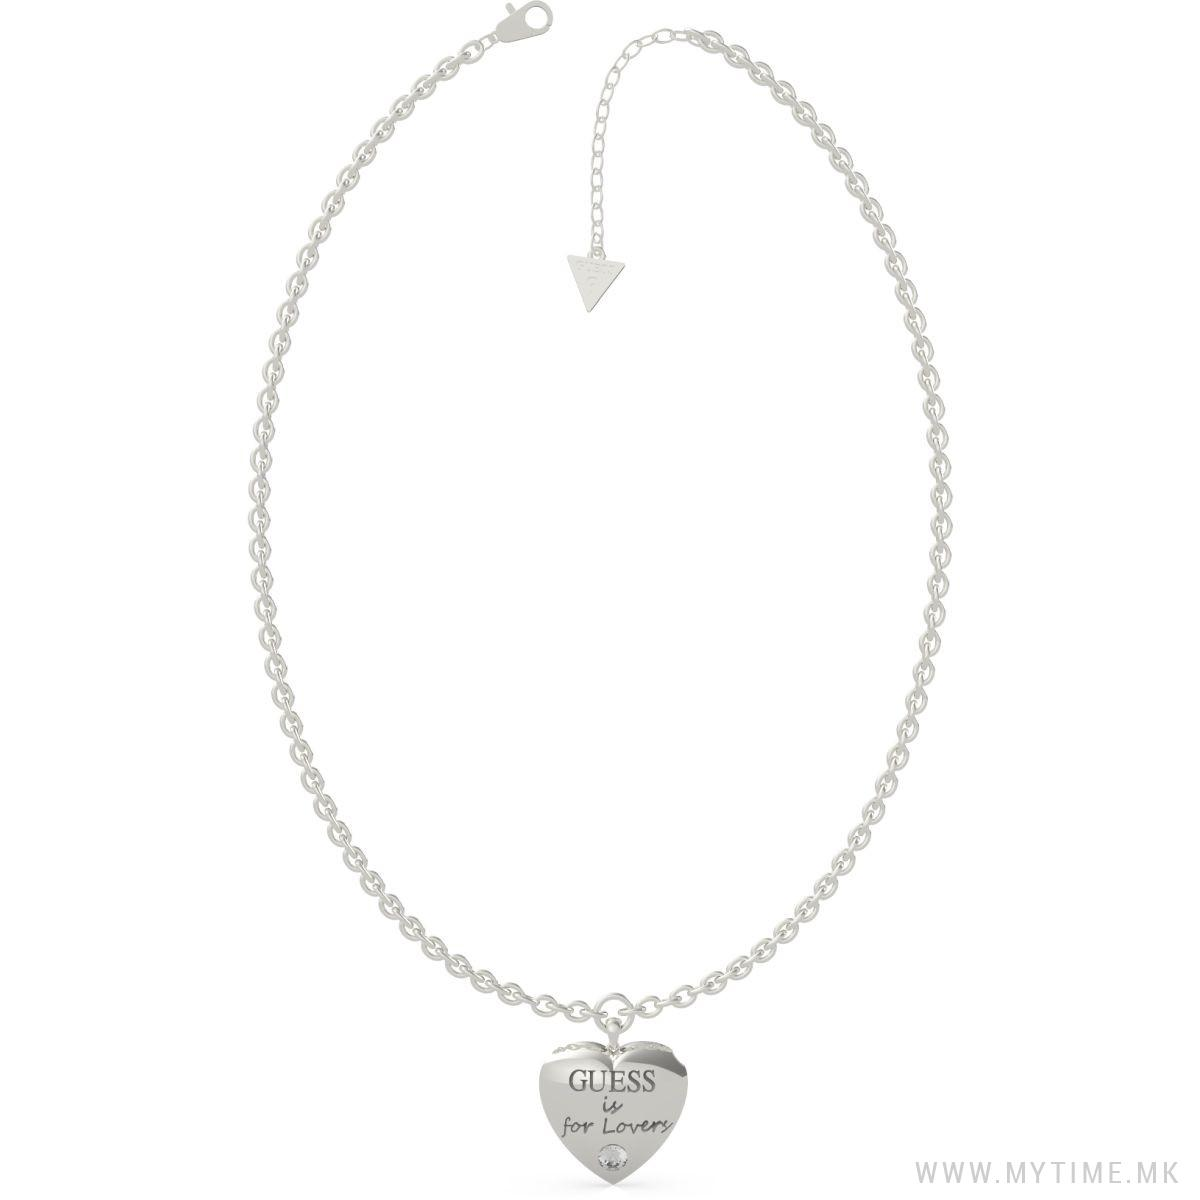 UBN70025 GUESS IS FOR LOVERS